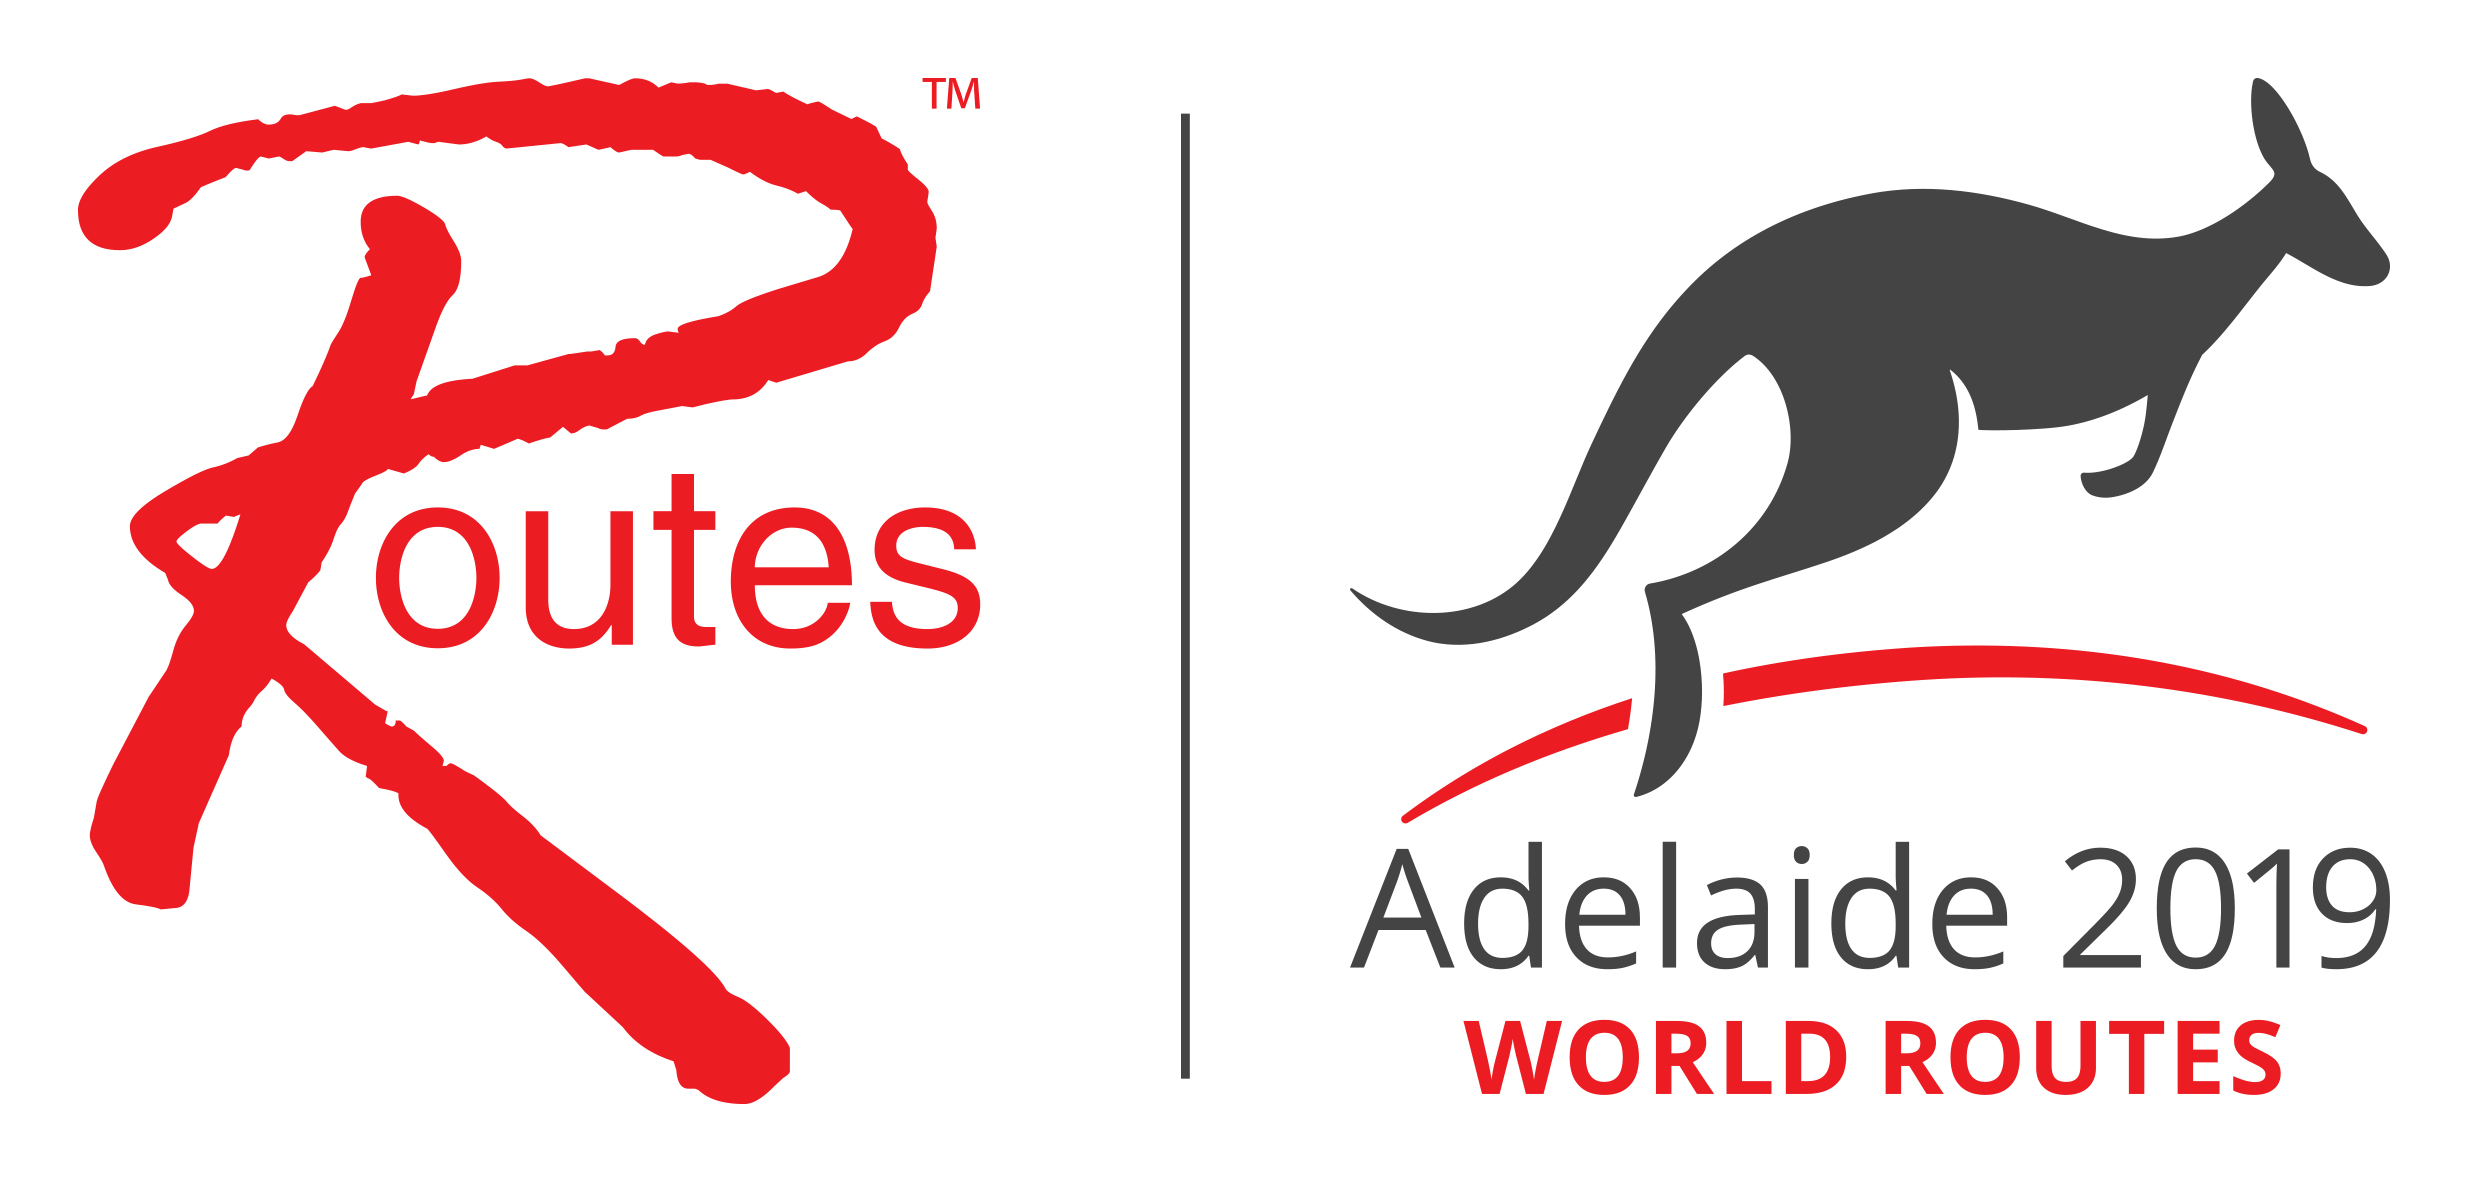 World Routes 2019 Adelaide